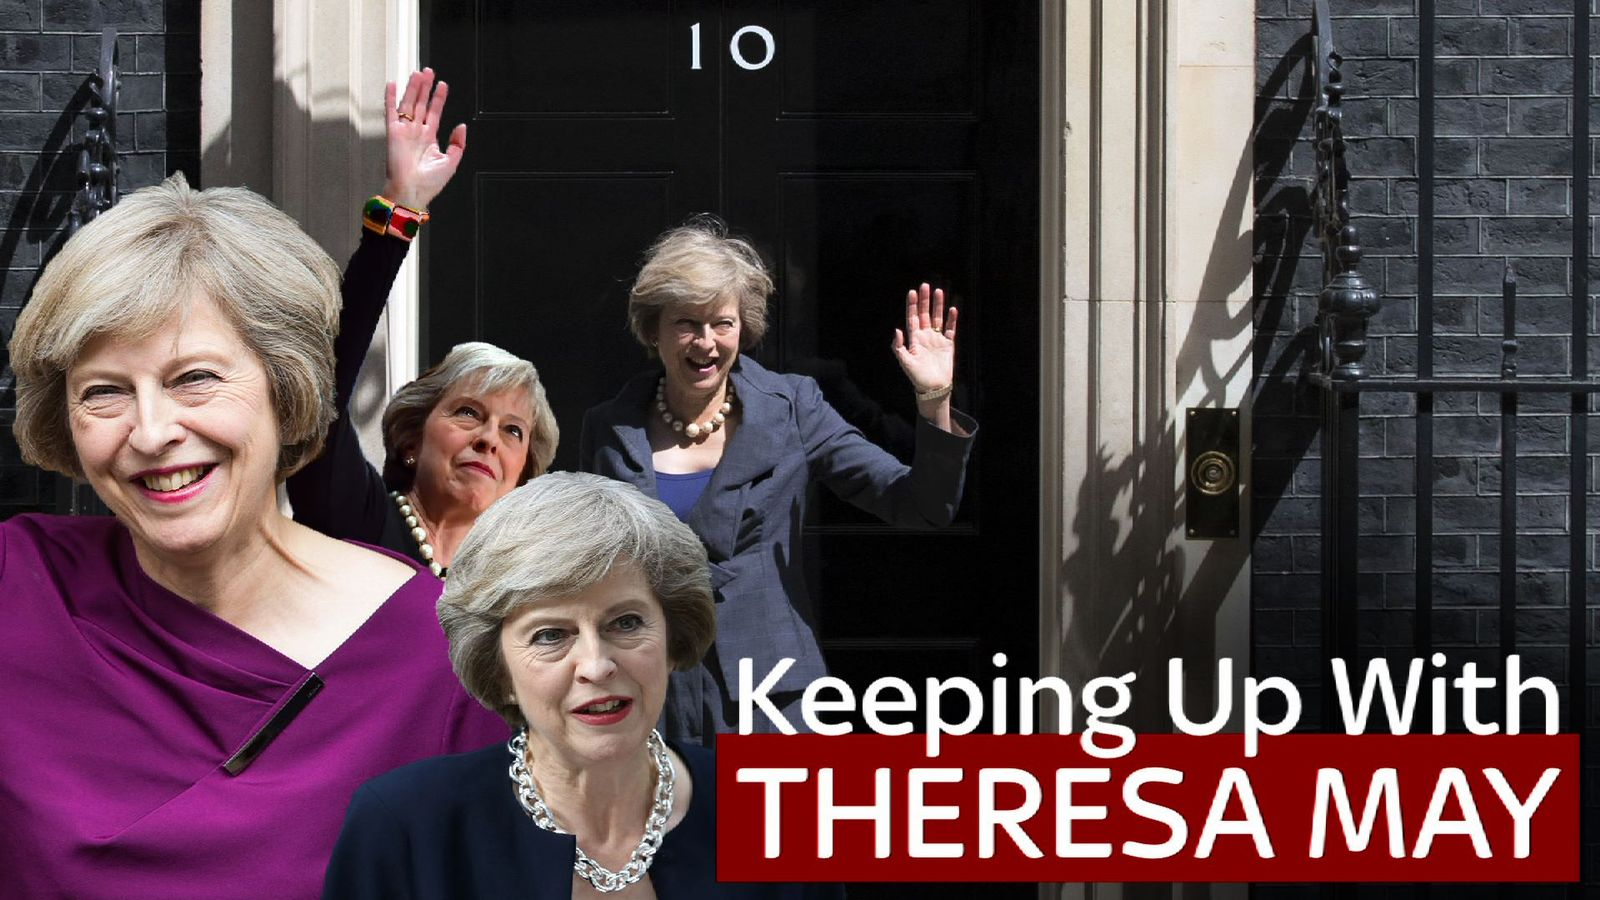 Theresa May outside 10 Downing Street